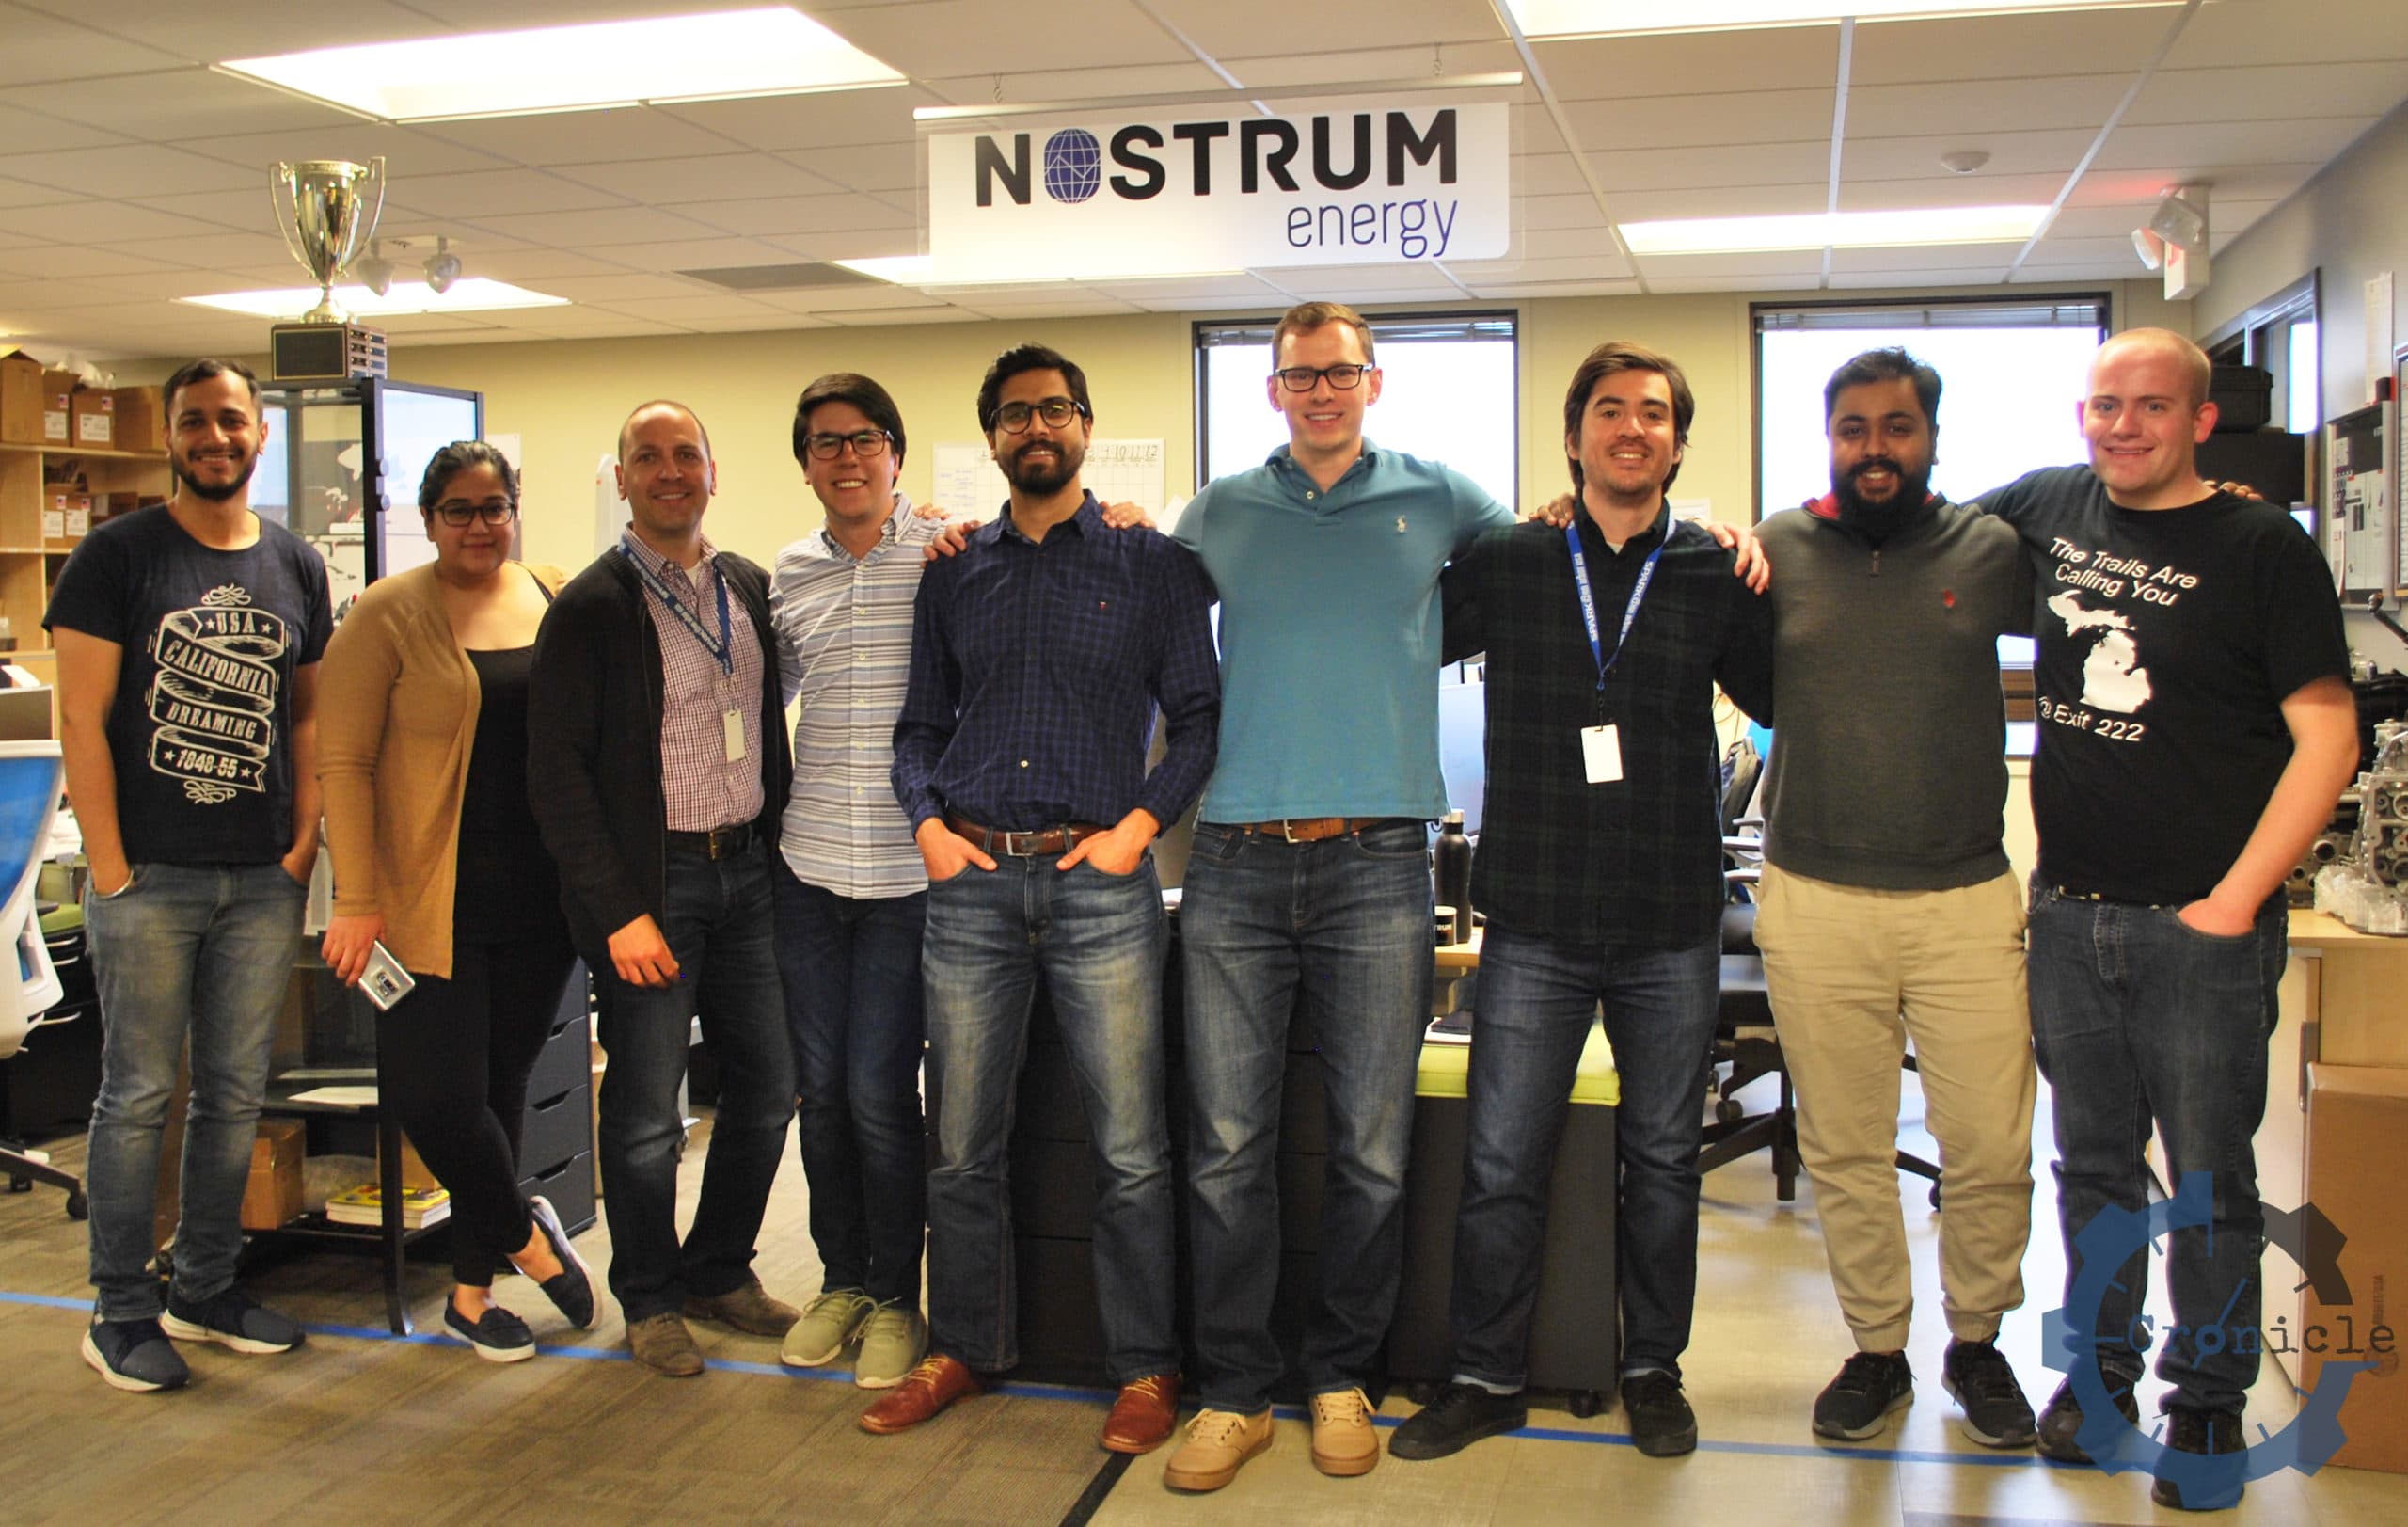 Nostrum Energy, Nostrum, automotive tech, engine tech, Ann Arbor Spark, Ann Arbor tech, Frank Loscrudato